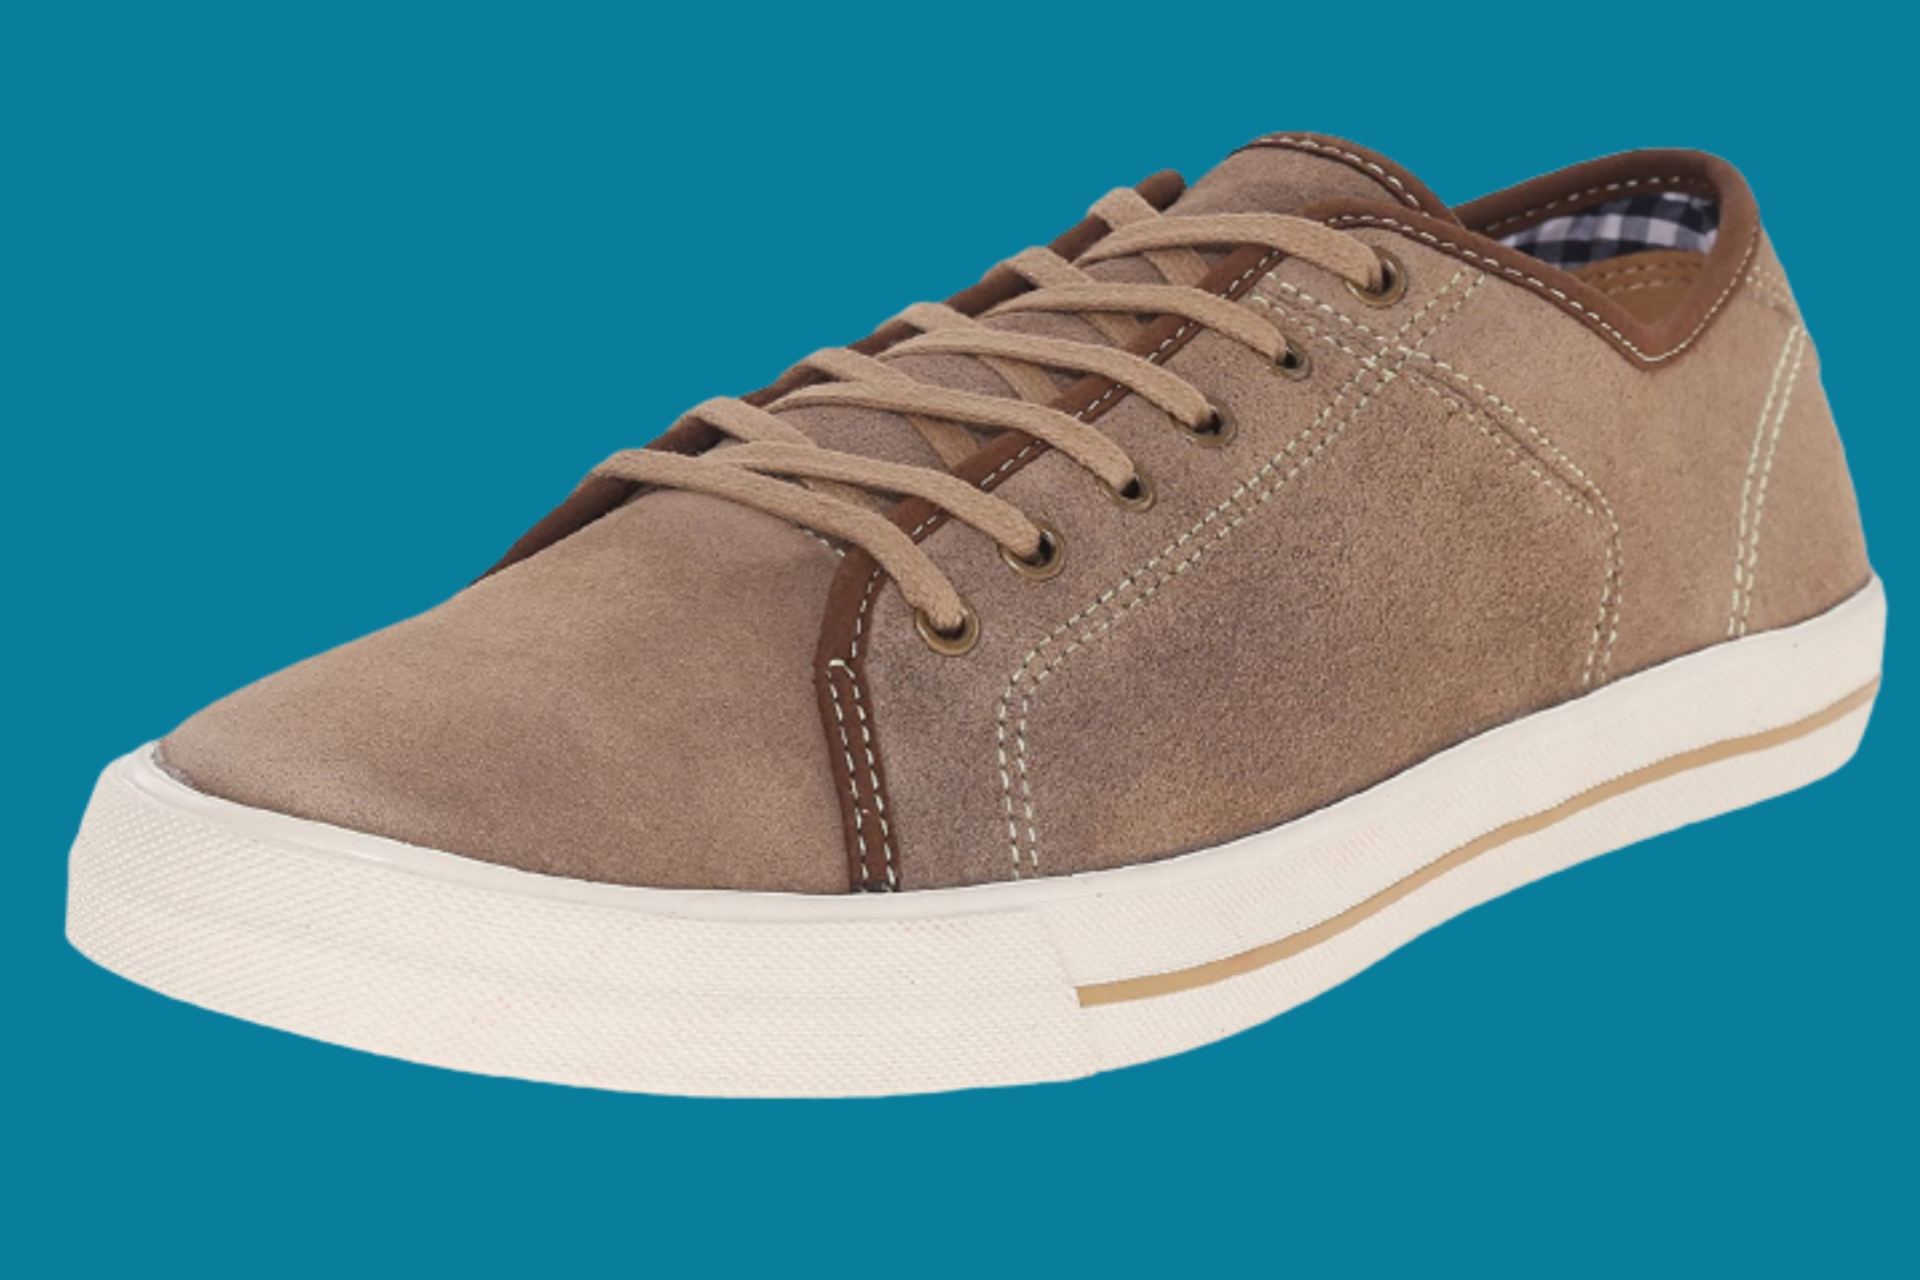 Best Florsheim suede shoes for men